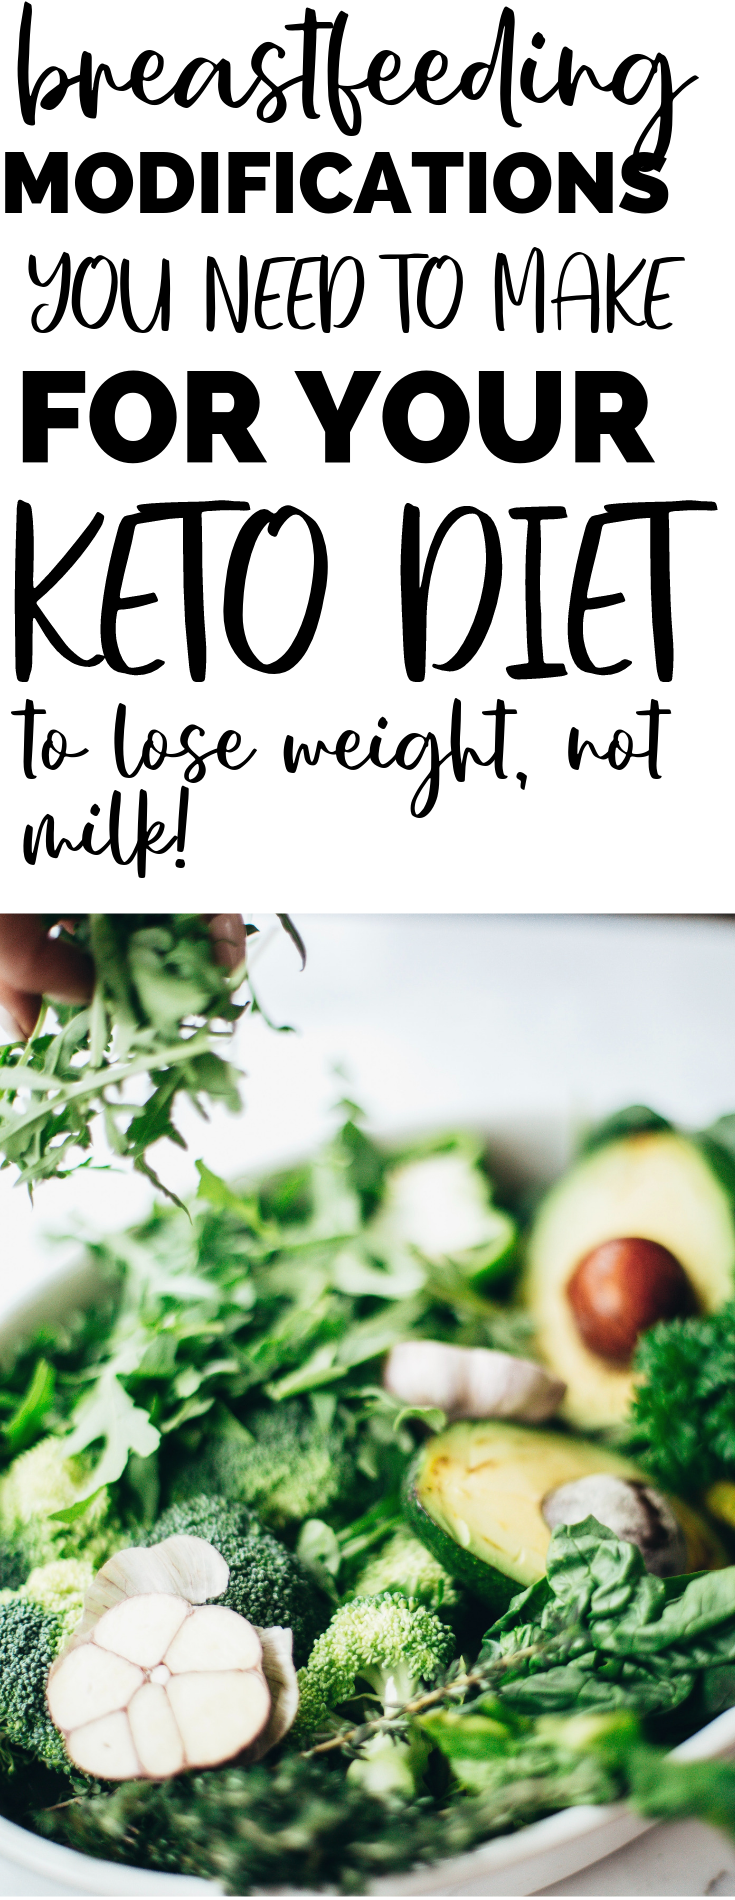 READ THIS!! if you are keto and breastfeeding, read these simple modifications to help you keep losing weight, and not your milk supply!